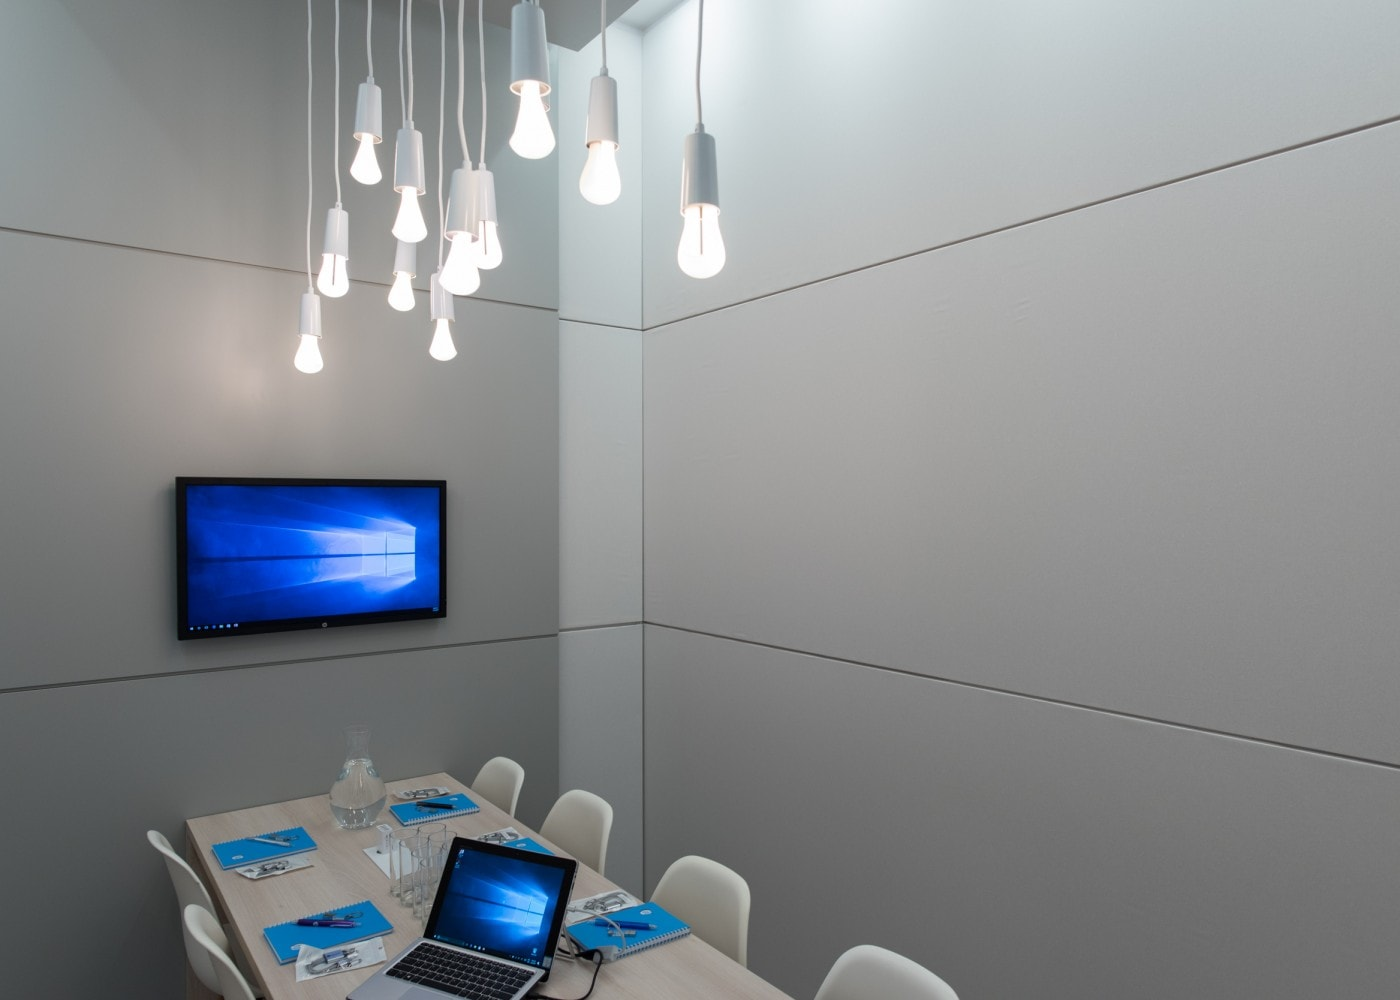 Modern office pod with falling string light-bulbs